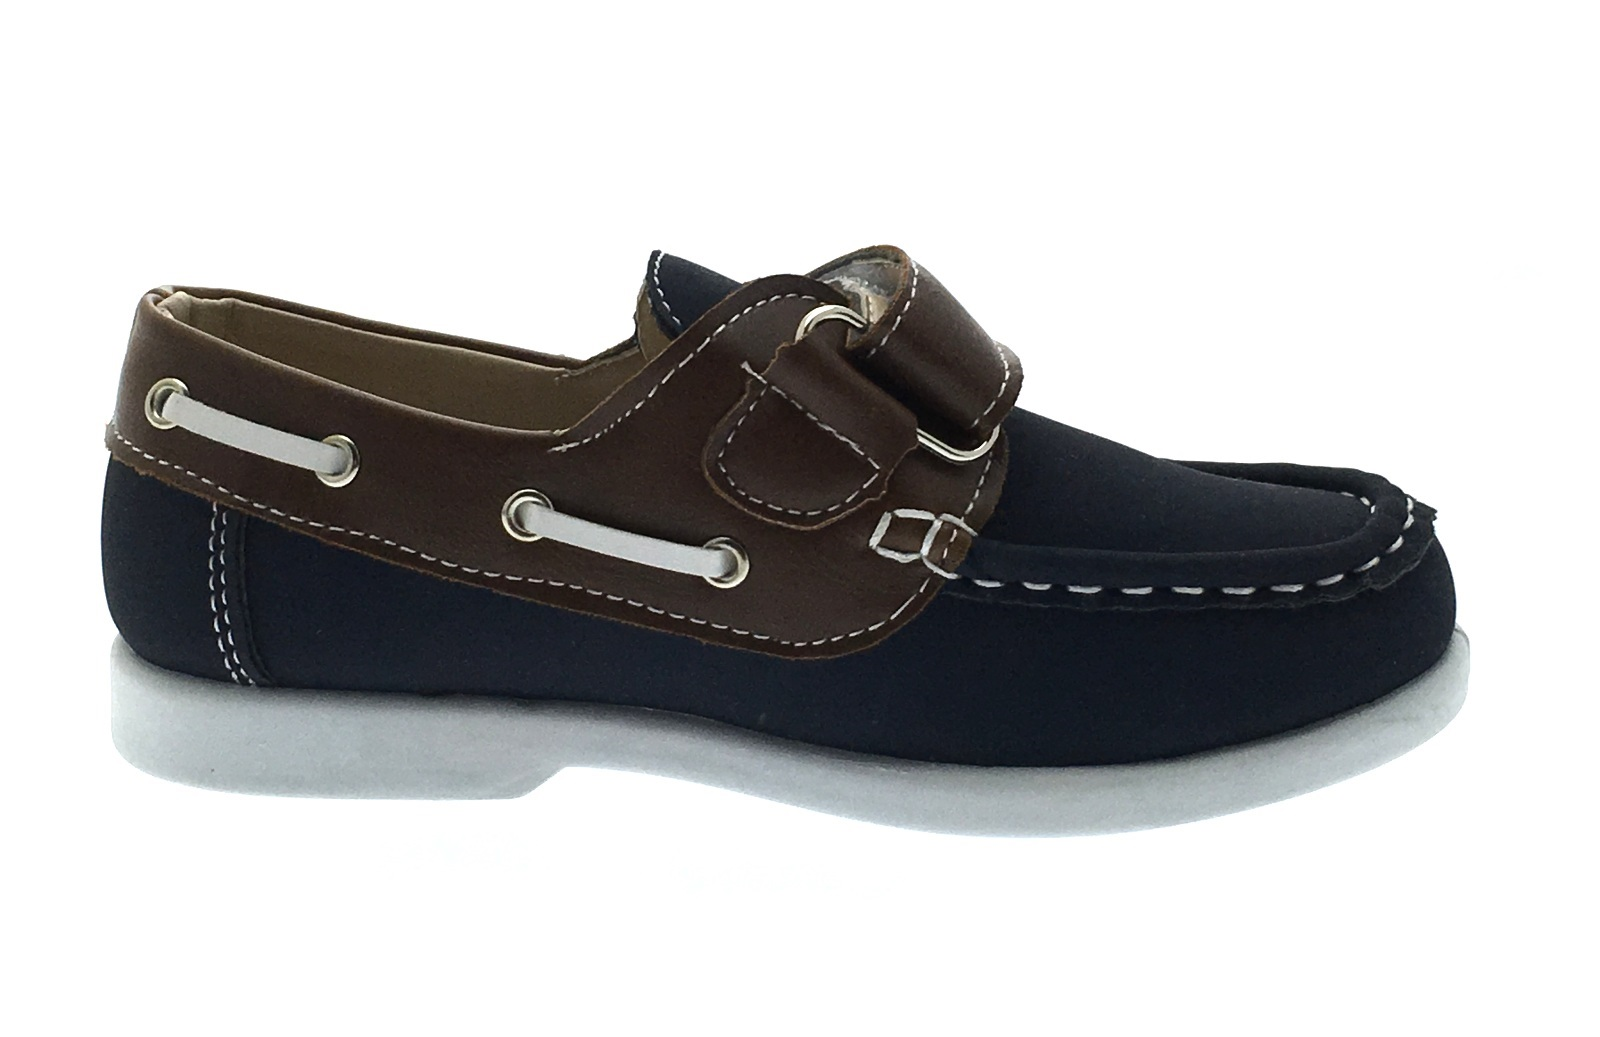 Boys Boat Deck Shoes Slip On Lace Up Loafers Casual Moccasins ...